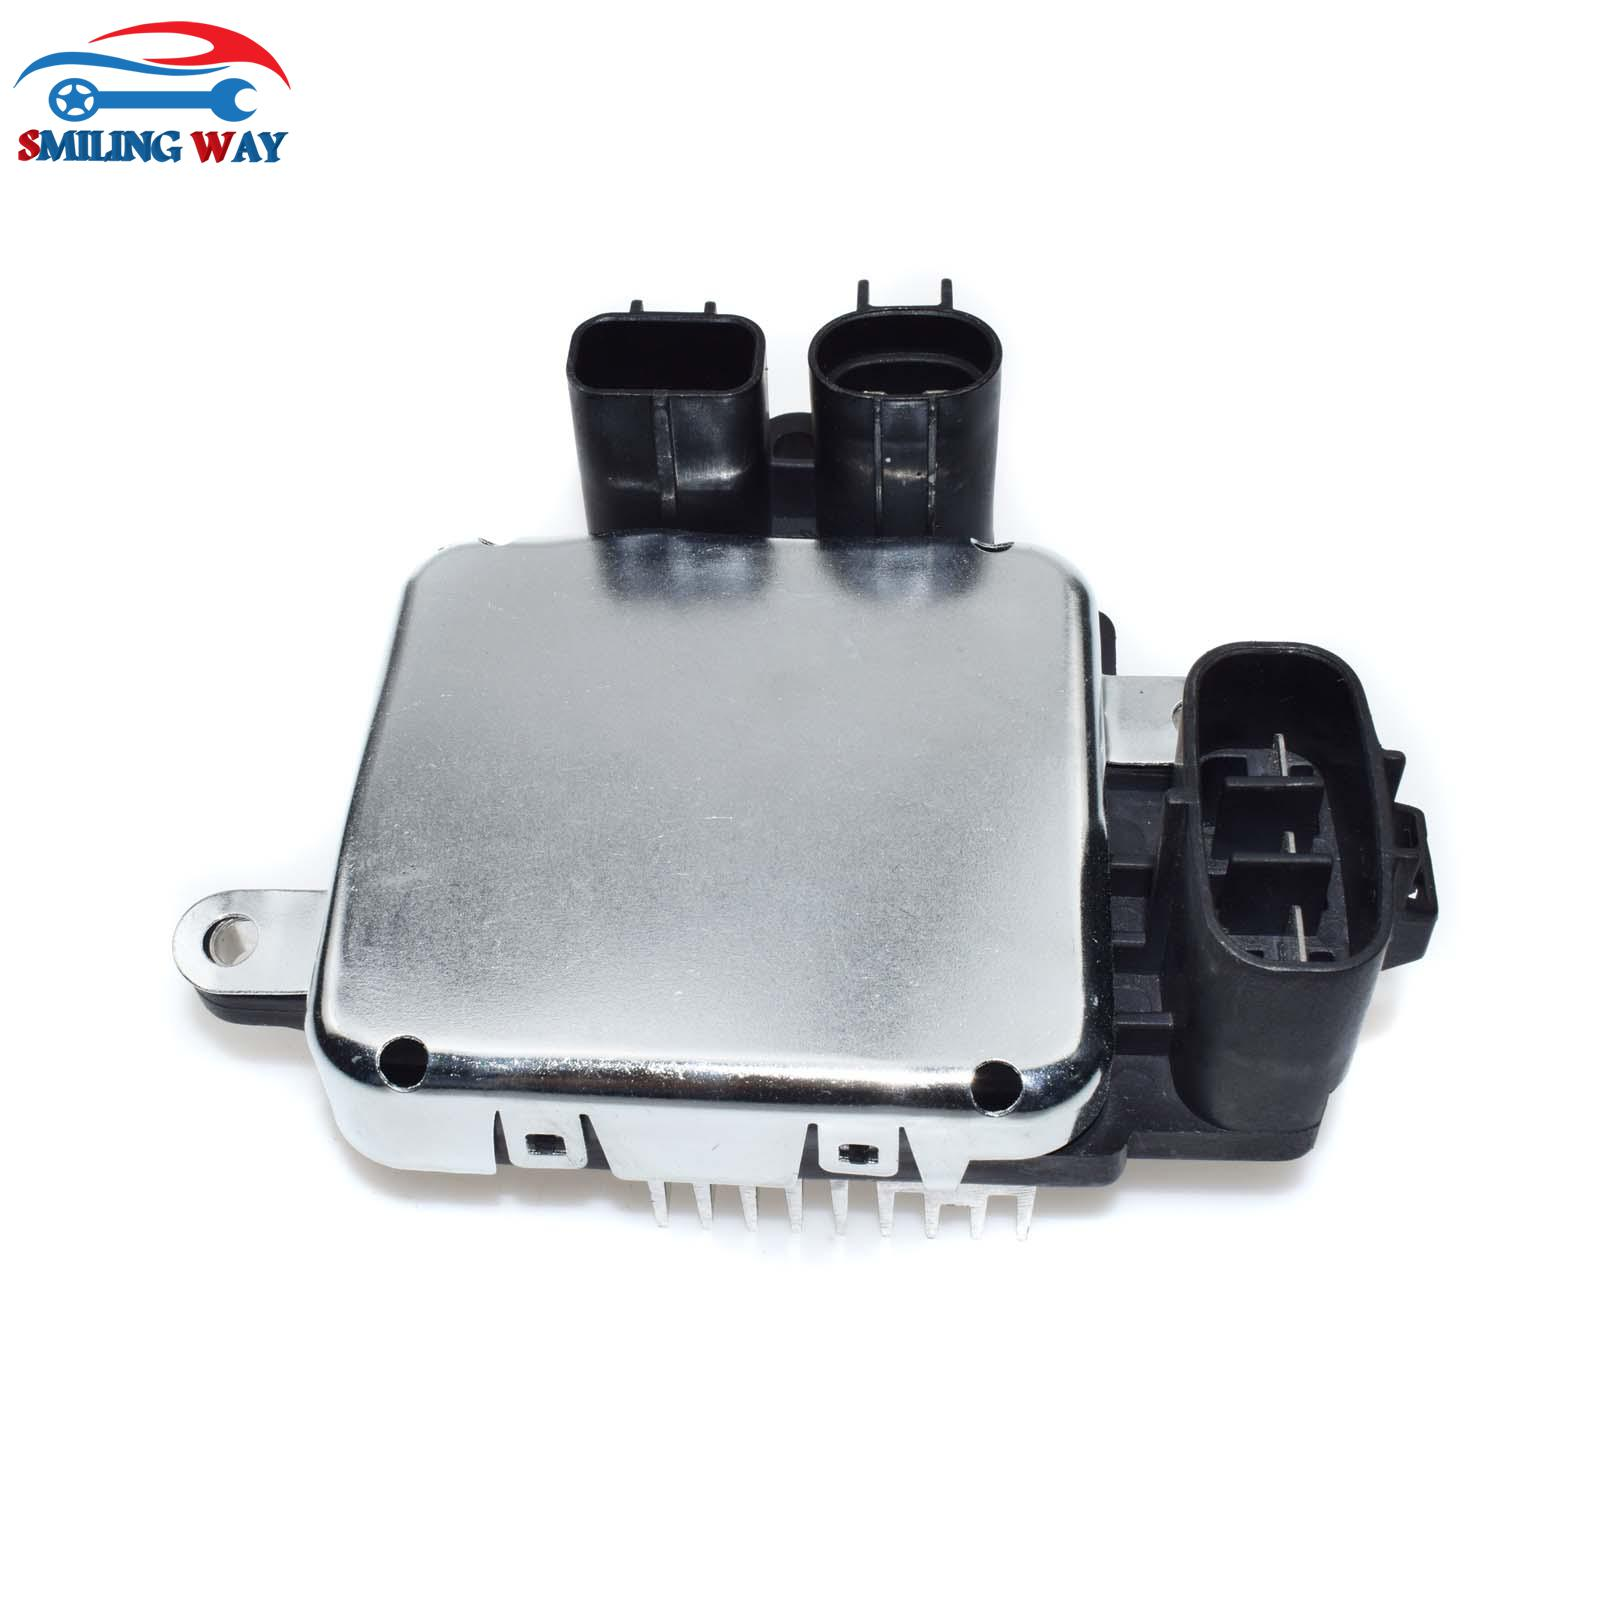 small resolution of smiling way blower motor resistor for toyota camry highlander venza avalon rav4 sienna lexus es350 gs300 gs350 gs430 gs450h in blower motors from